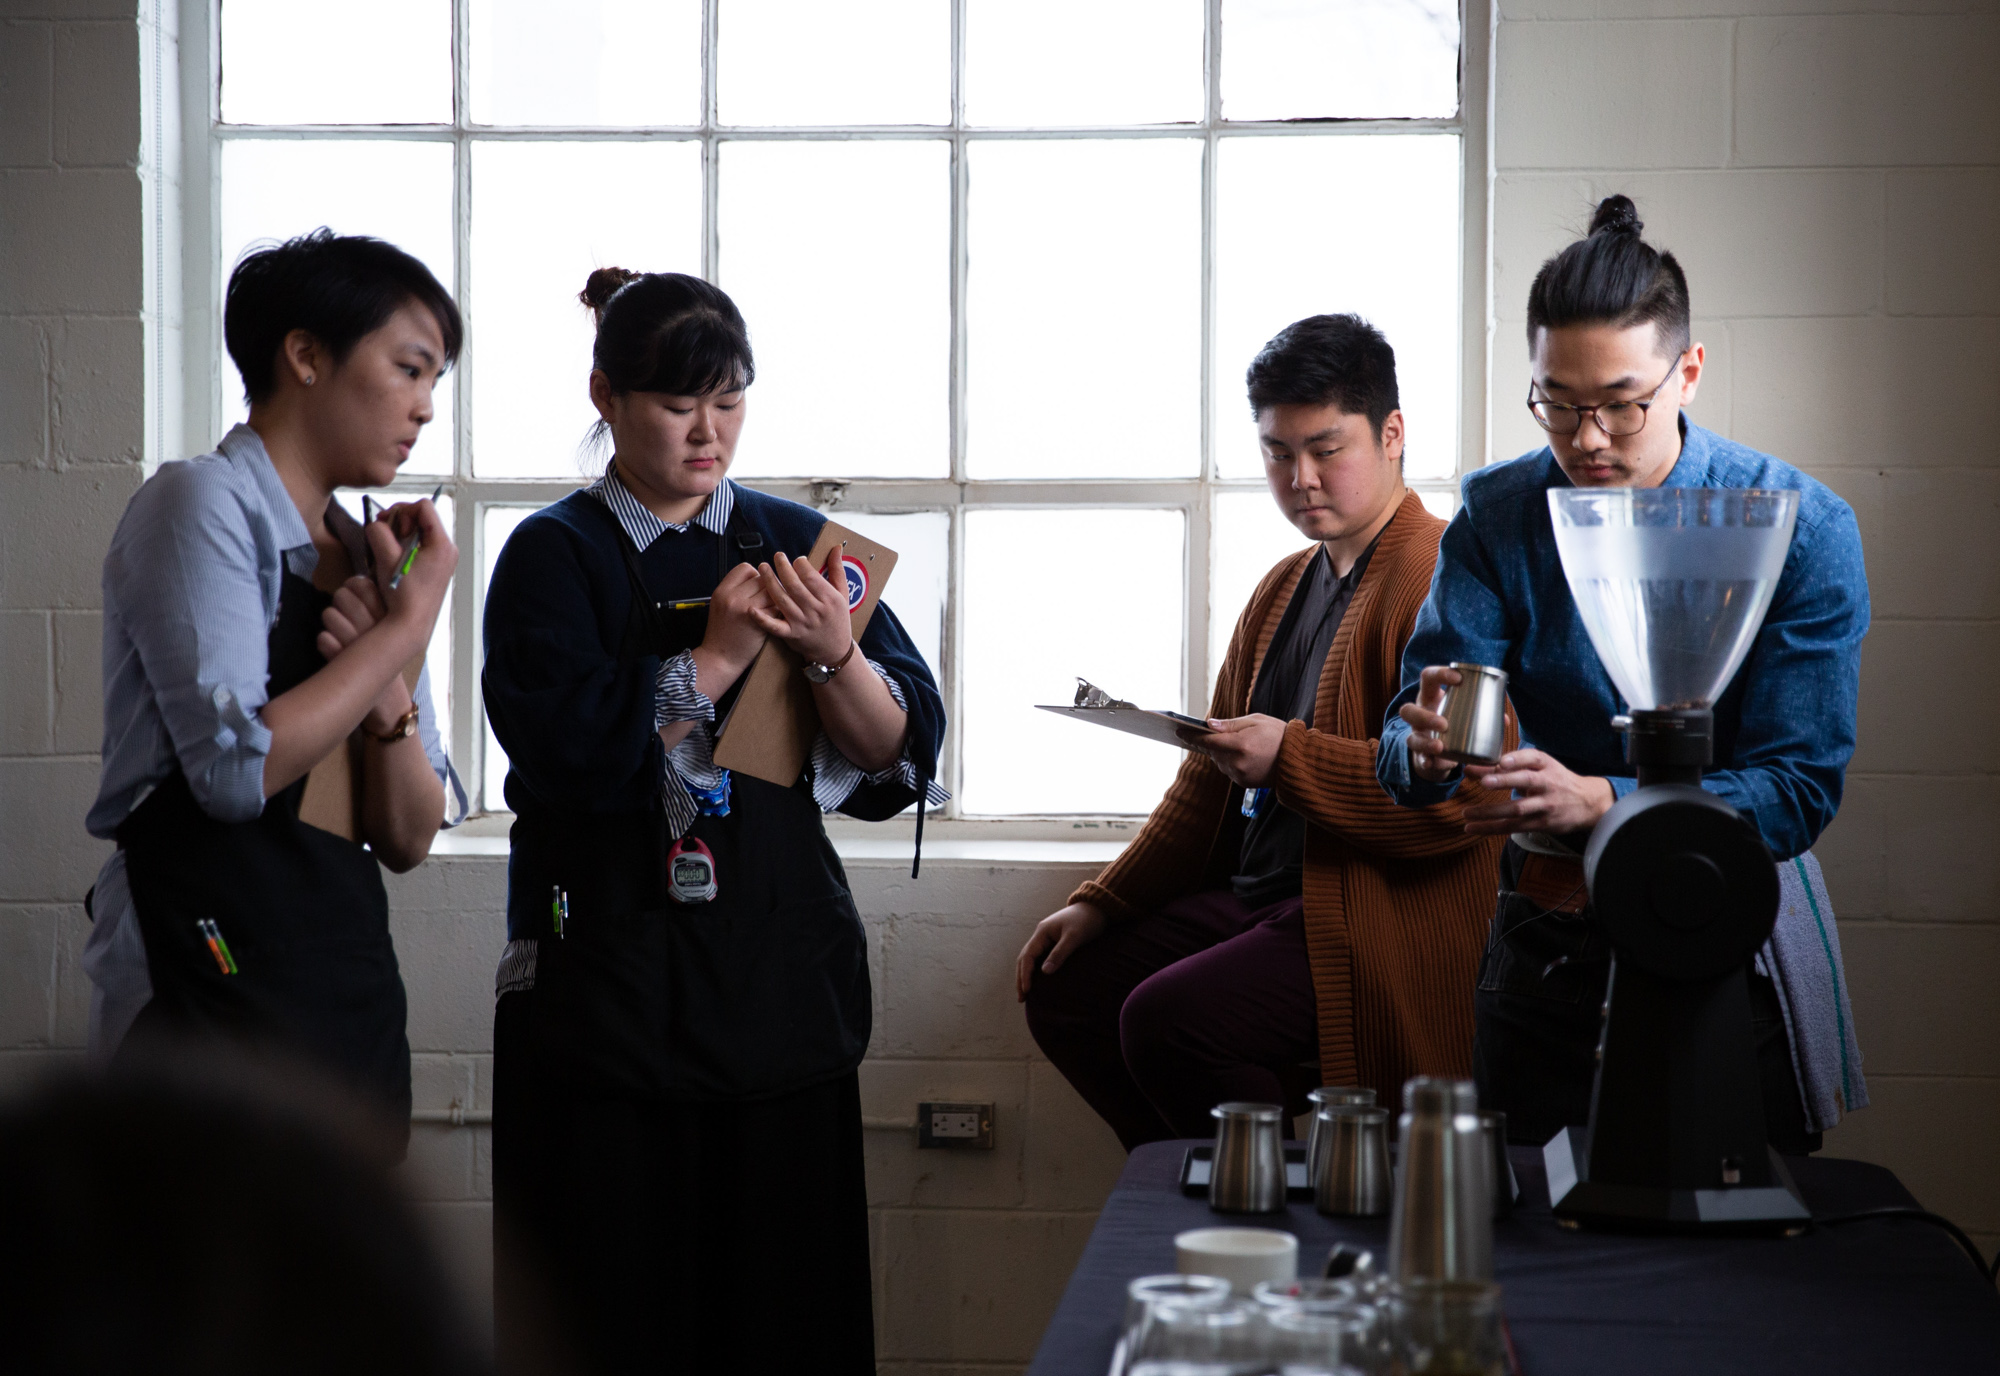 Nelson Phu, 29, from Calgary, grinds coffee beans while judges look on.